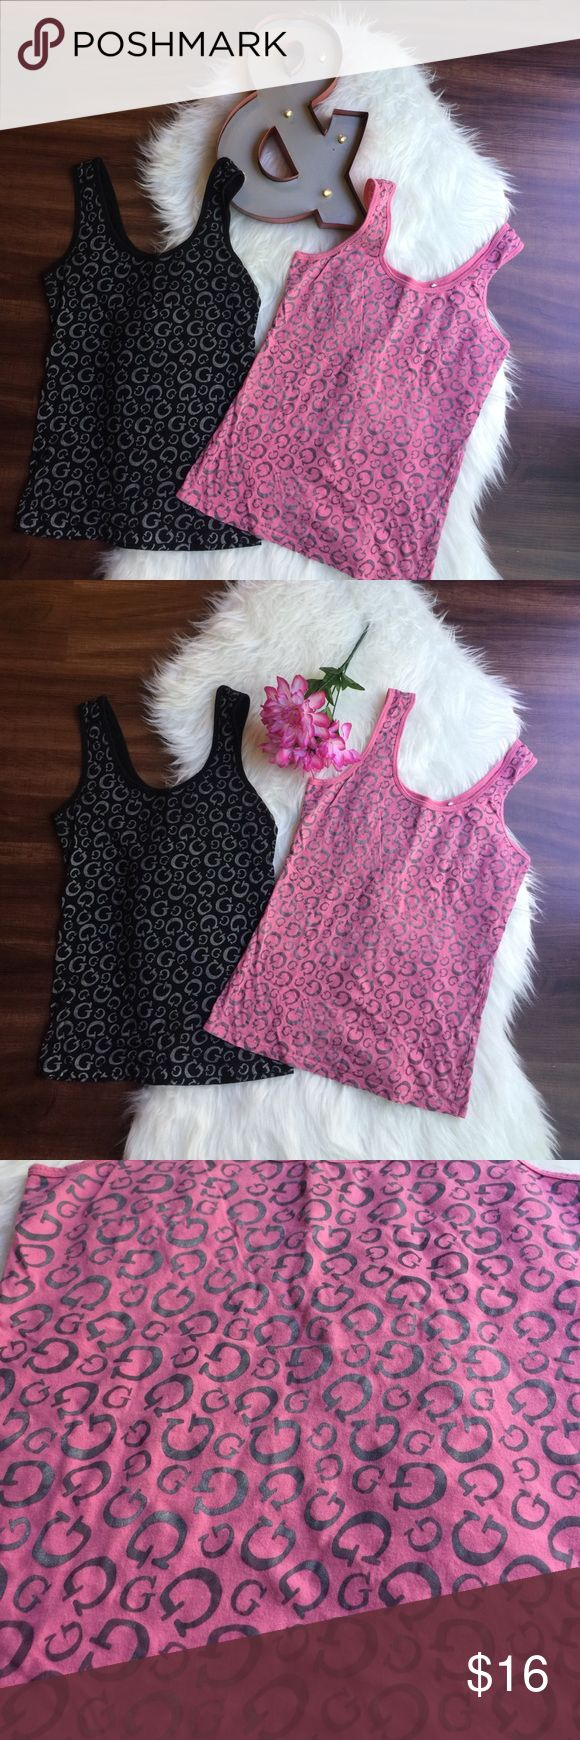 Both Guess Tanks: Small & Medium 2️⃣ Guess tanks, black is size small, pink is size medium. Both 💯% cotton. Great under Blazers or cardigans. Guess Tops Tank Tops